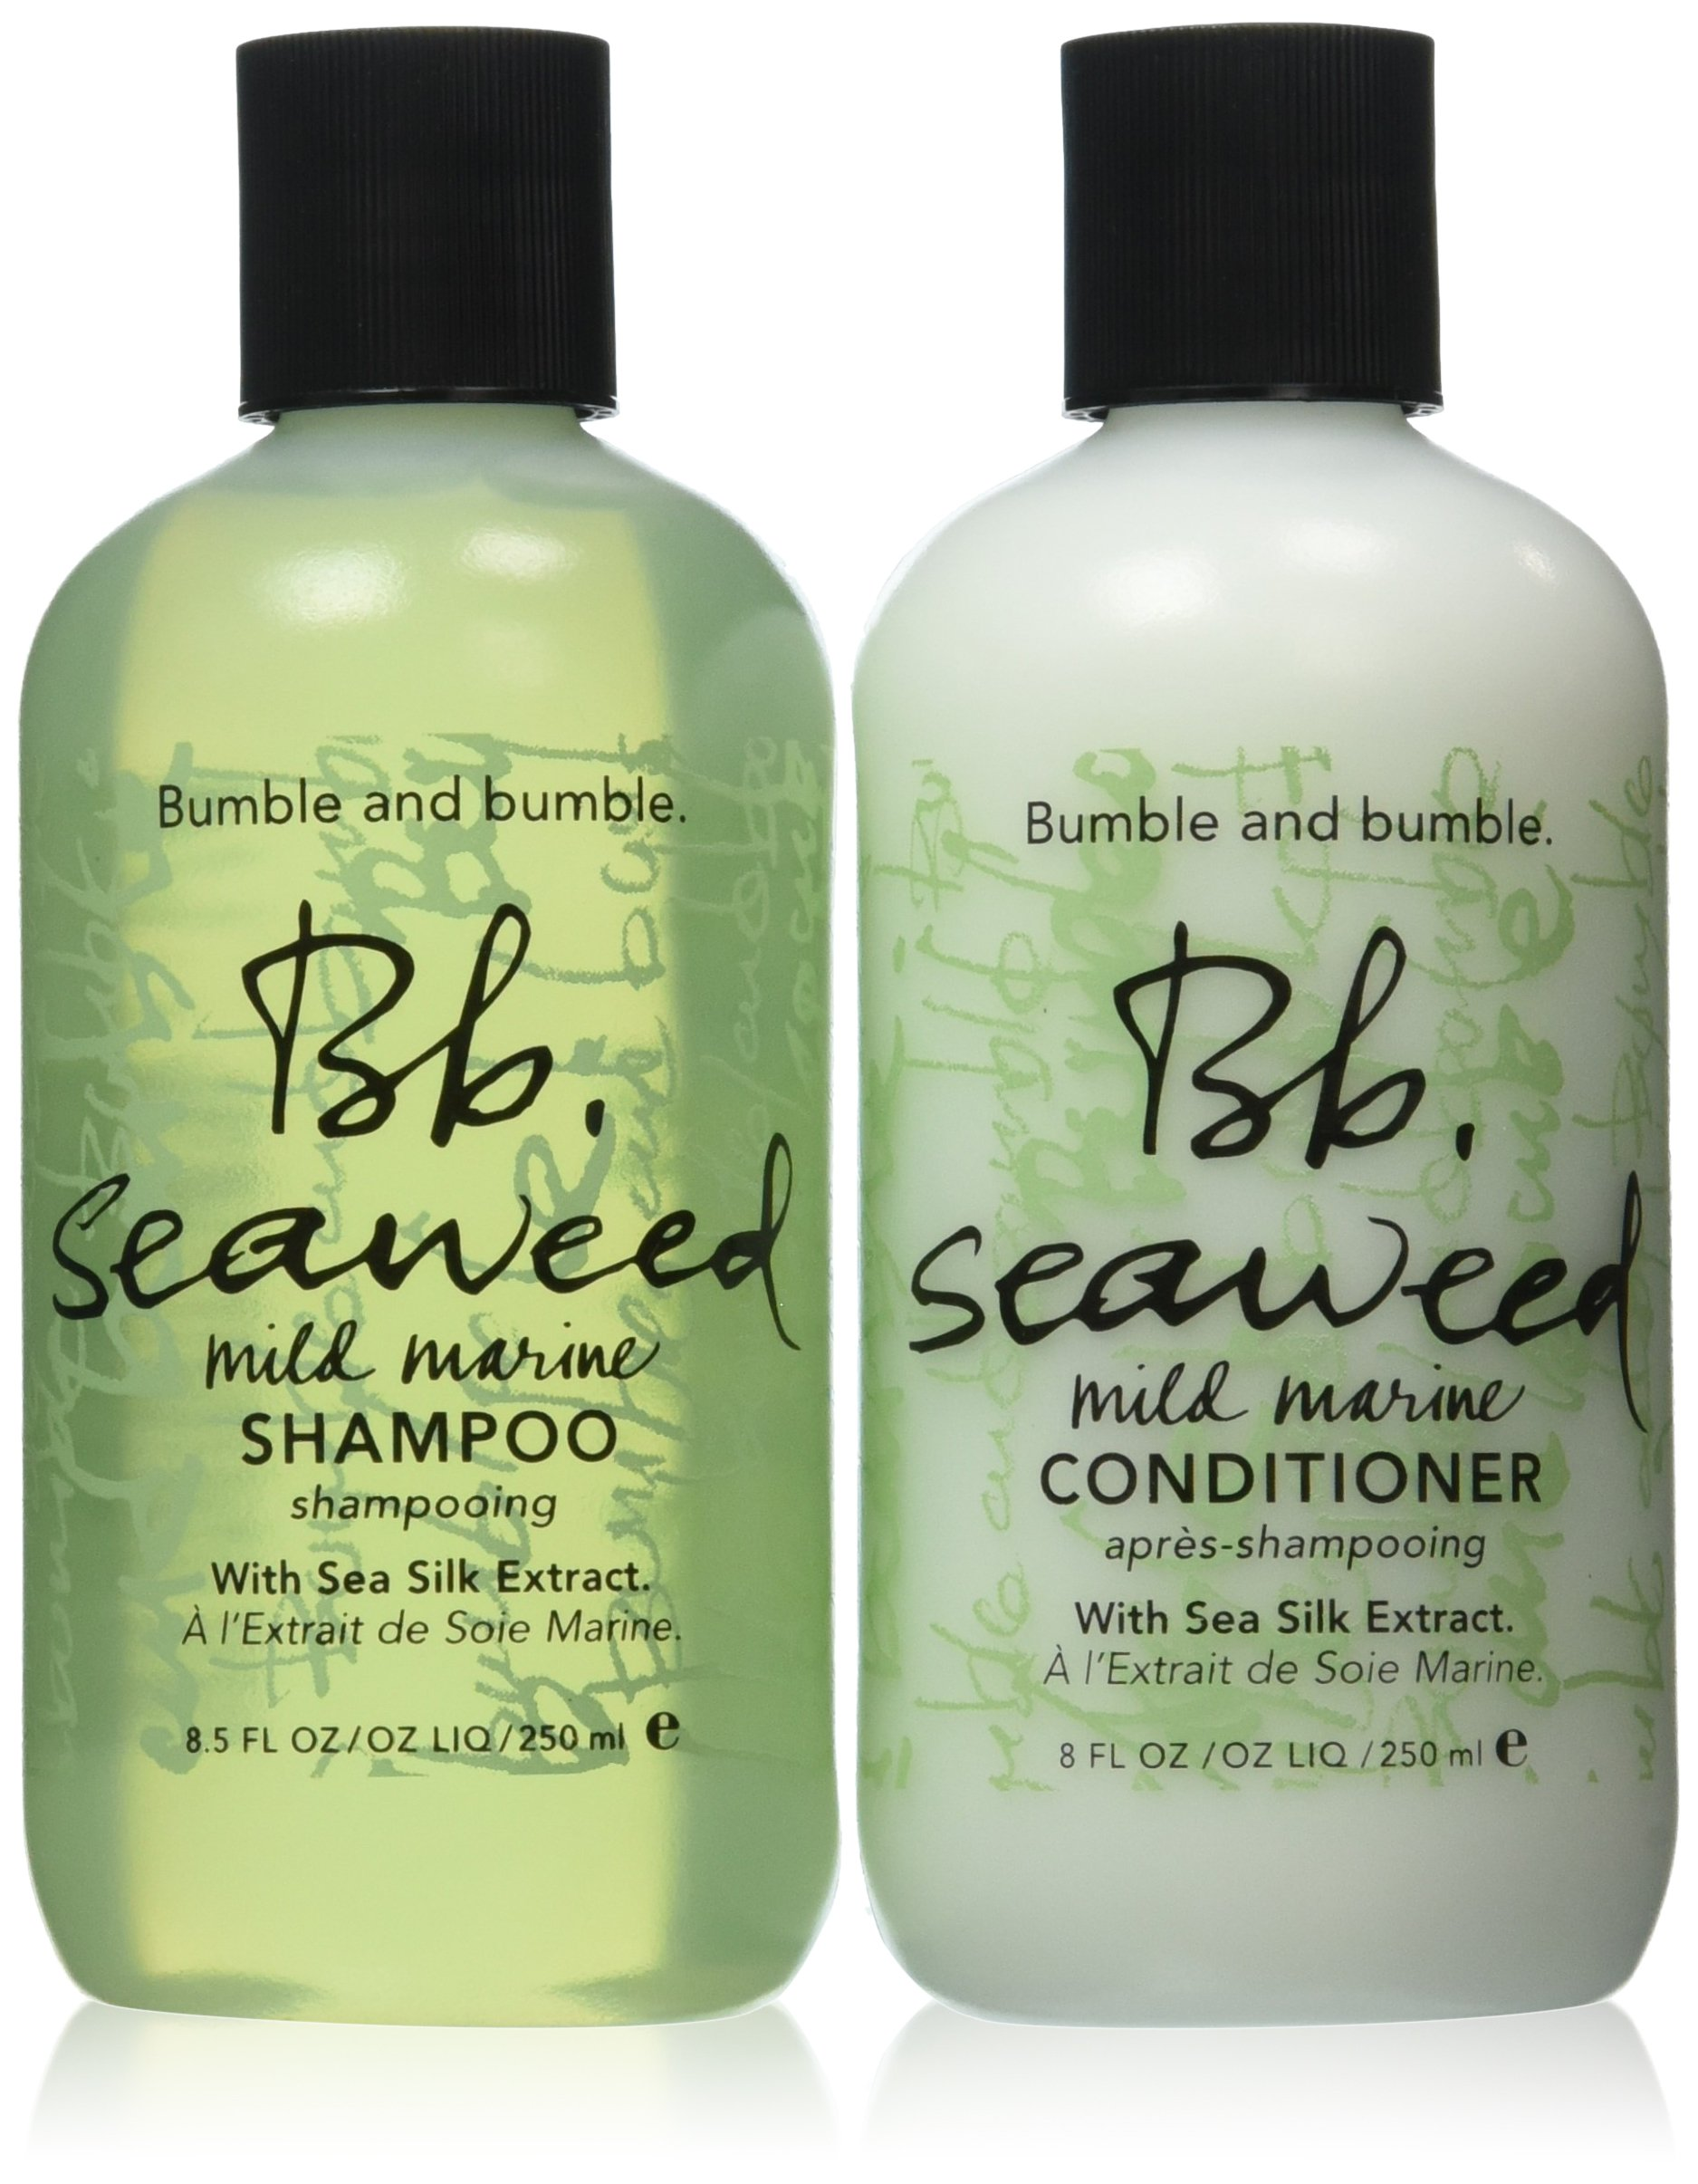 Bumble and Bumble Seaweed Shampoo and Conditioner 8.5oz Duo set by Bumble and Bumble